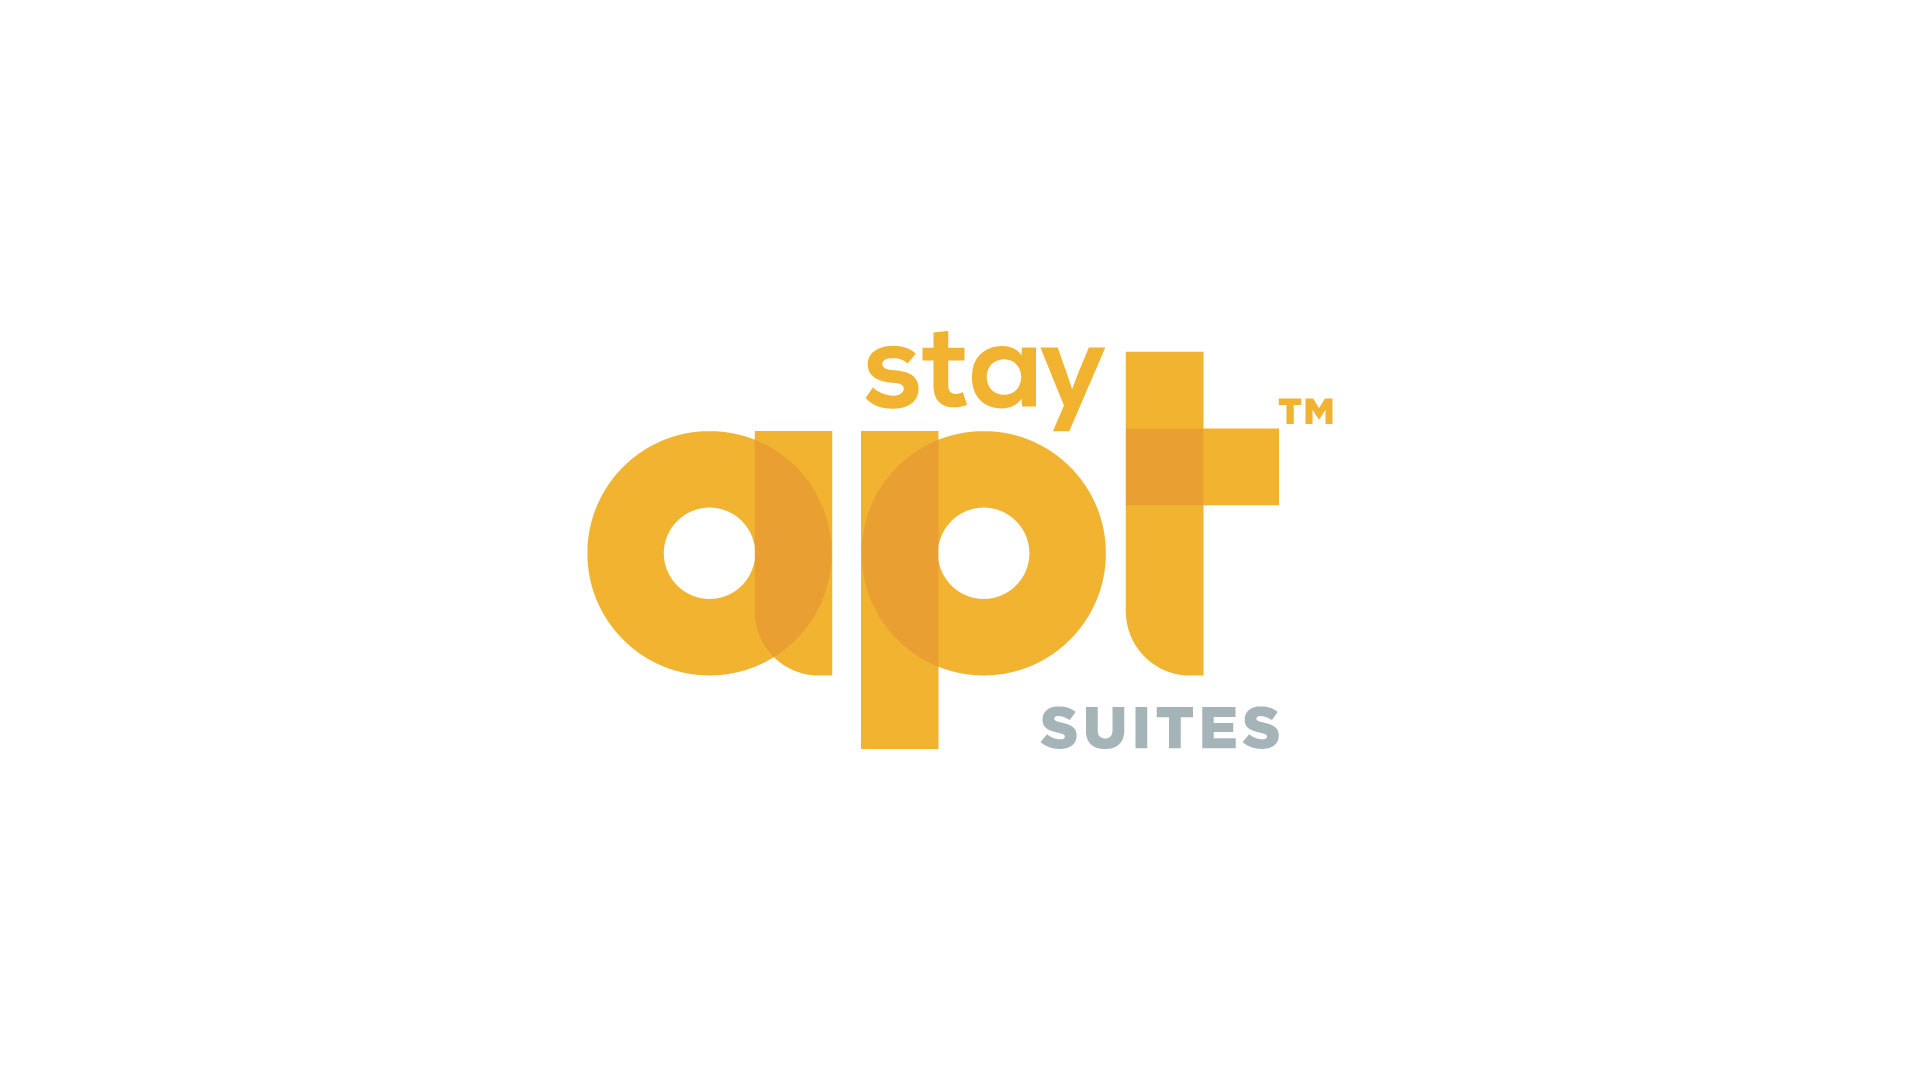 All-New stayAPT Suites Hotel Brand Launches in U.S.